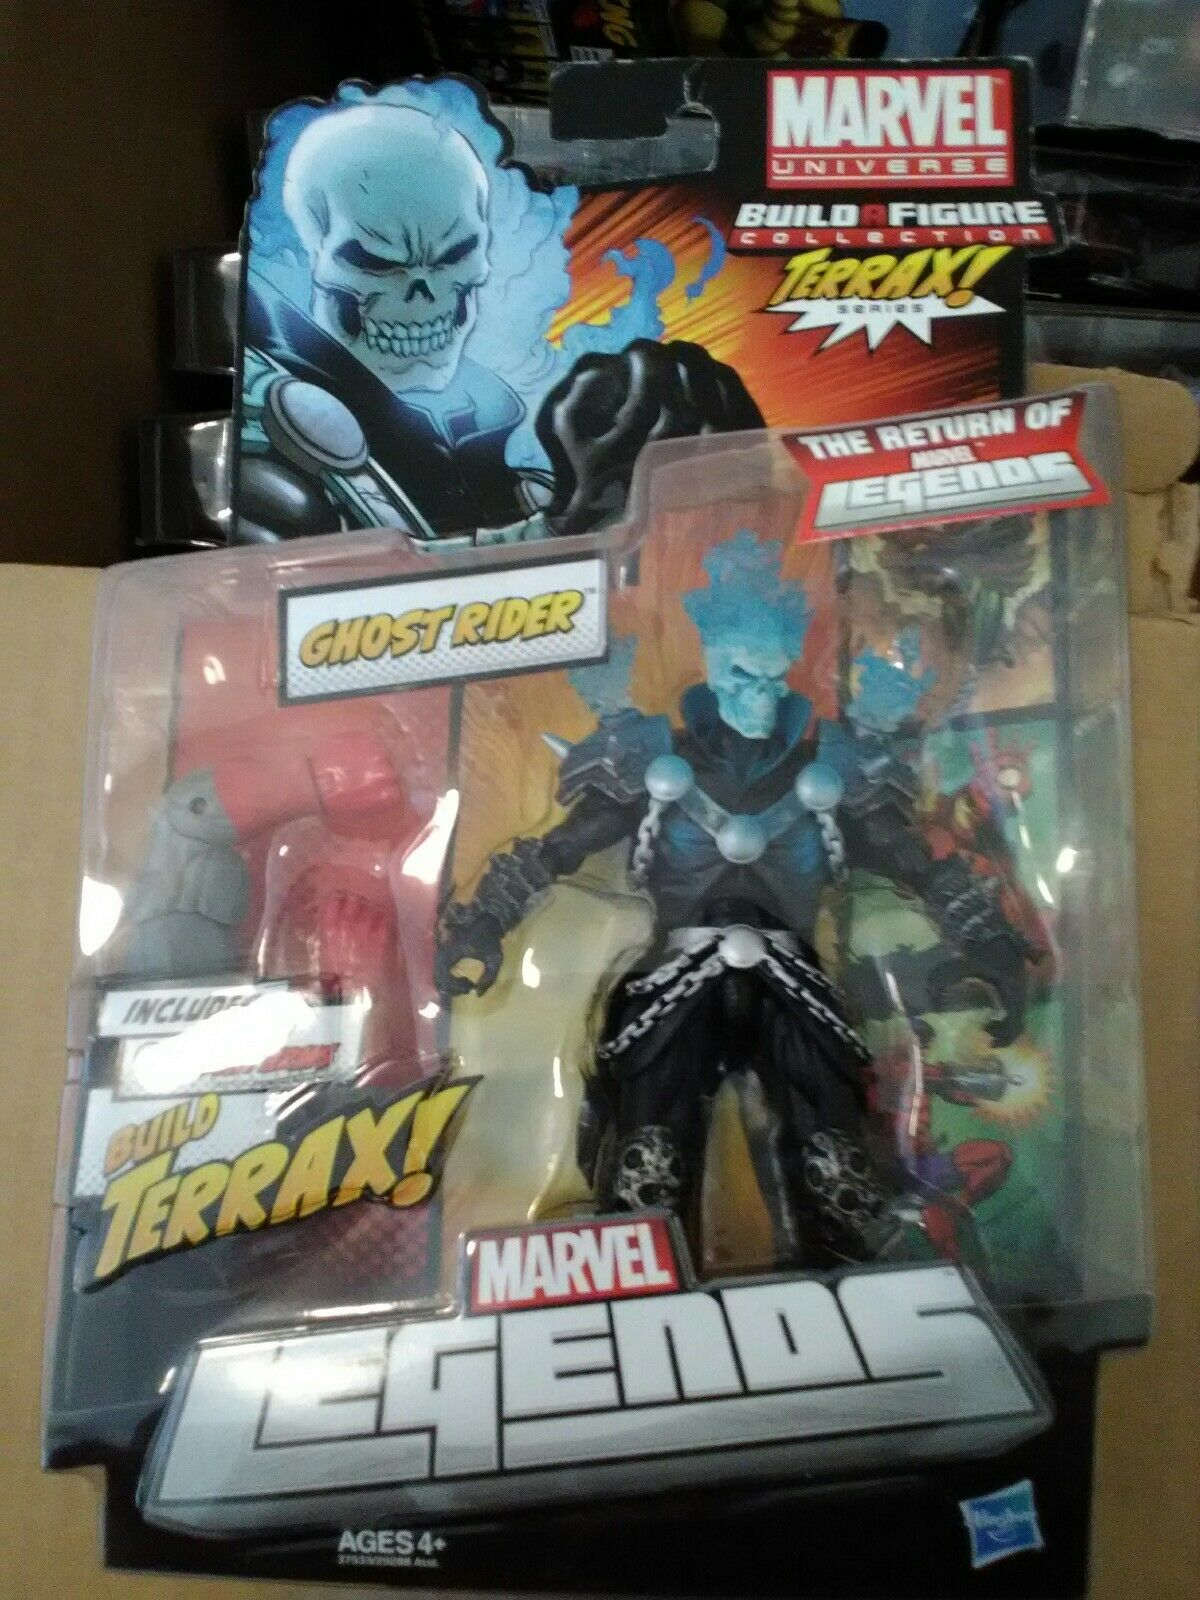 Marvel - legenden ghost rider blaue variante - hasbro terrax wave - mip